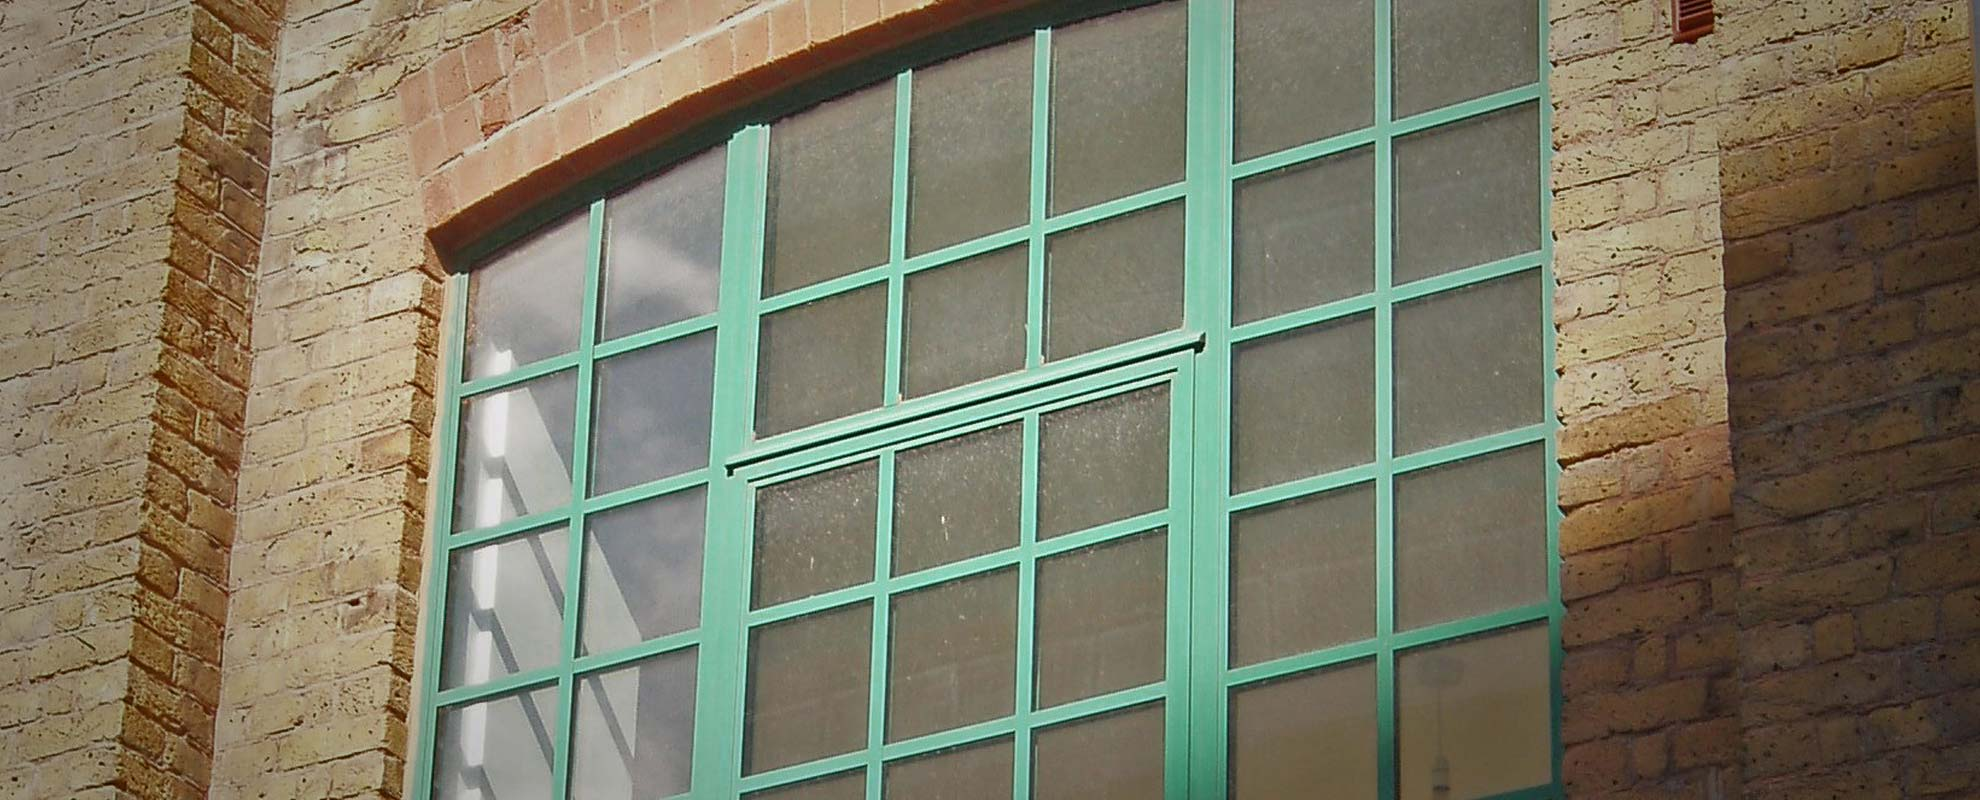 Former chocolate factory in london with new aluminium steel look windows in green